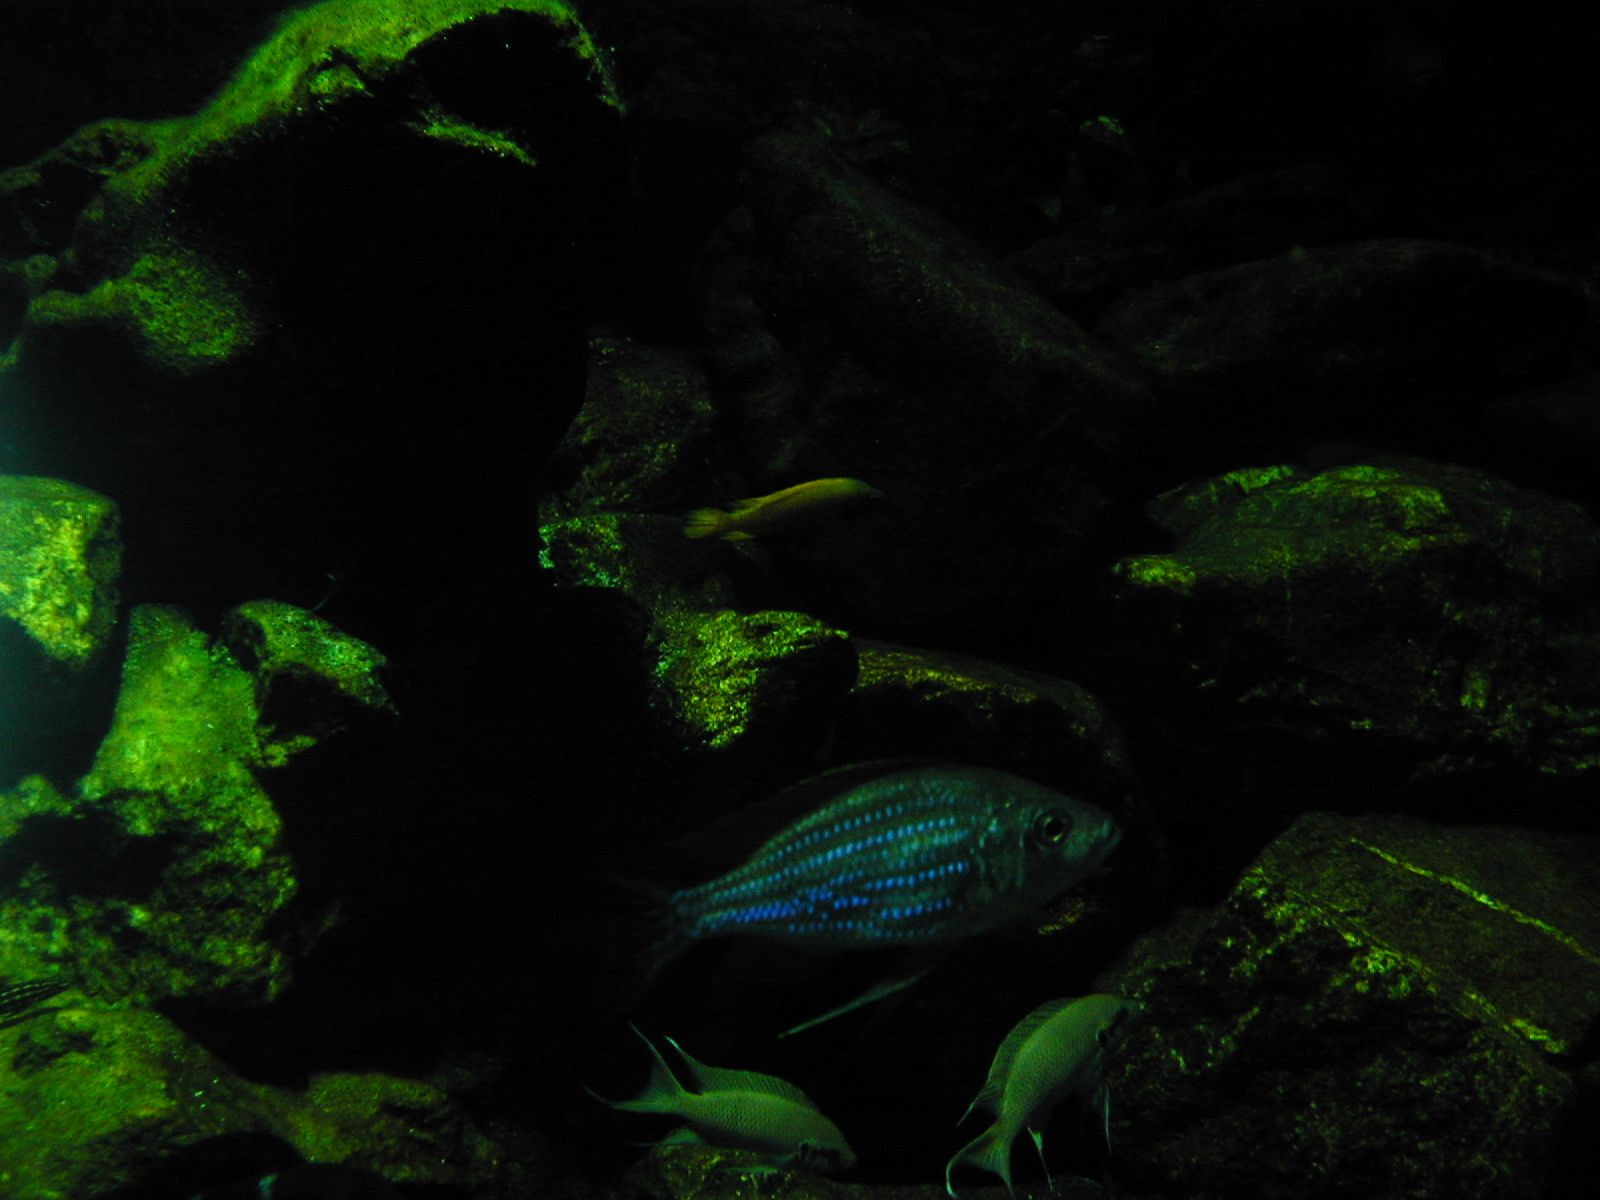 water plant fish under water dark